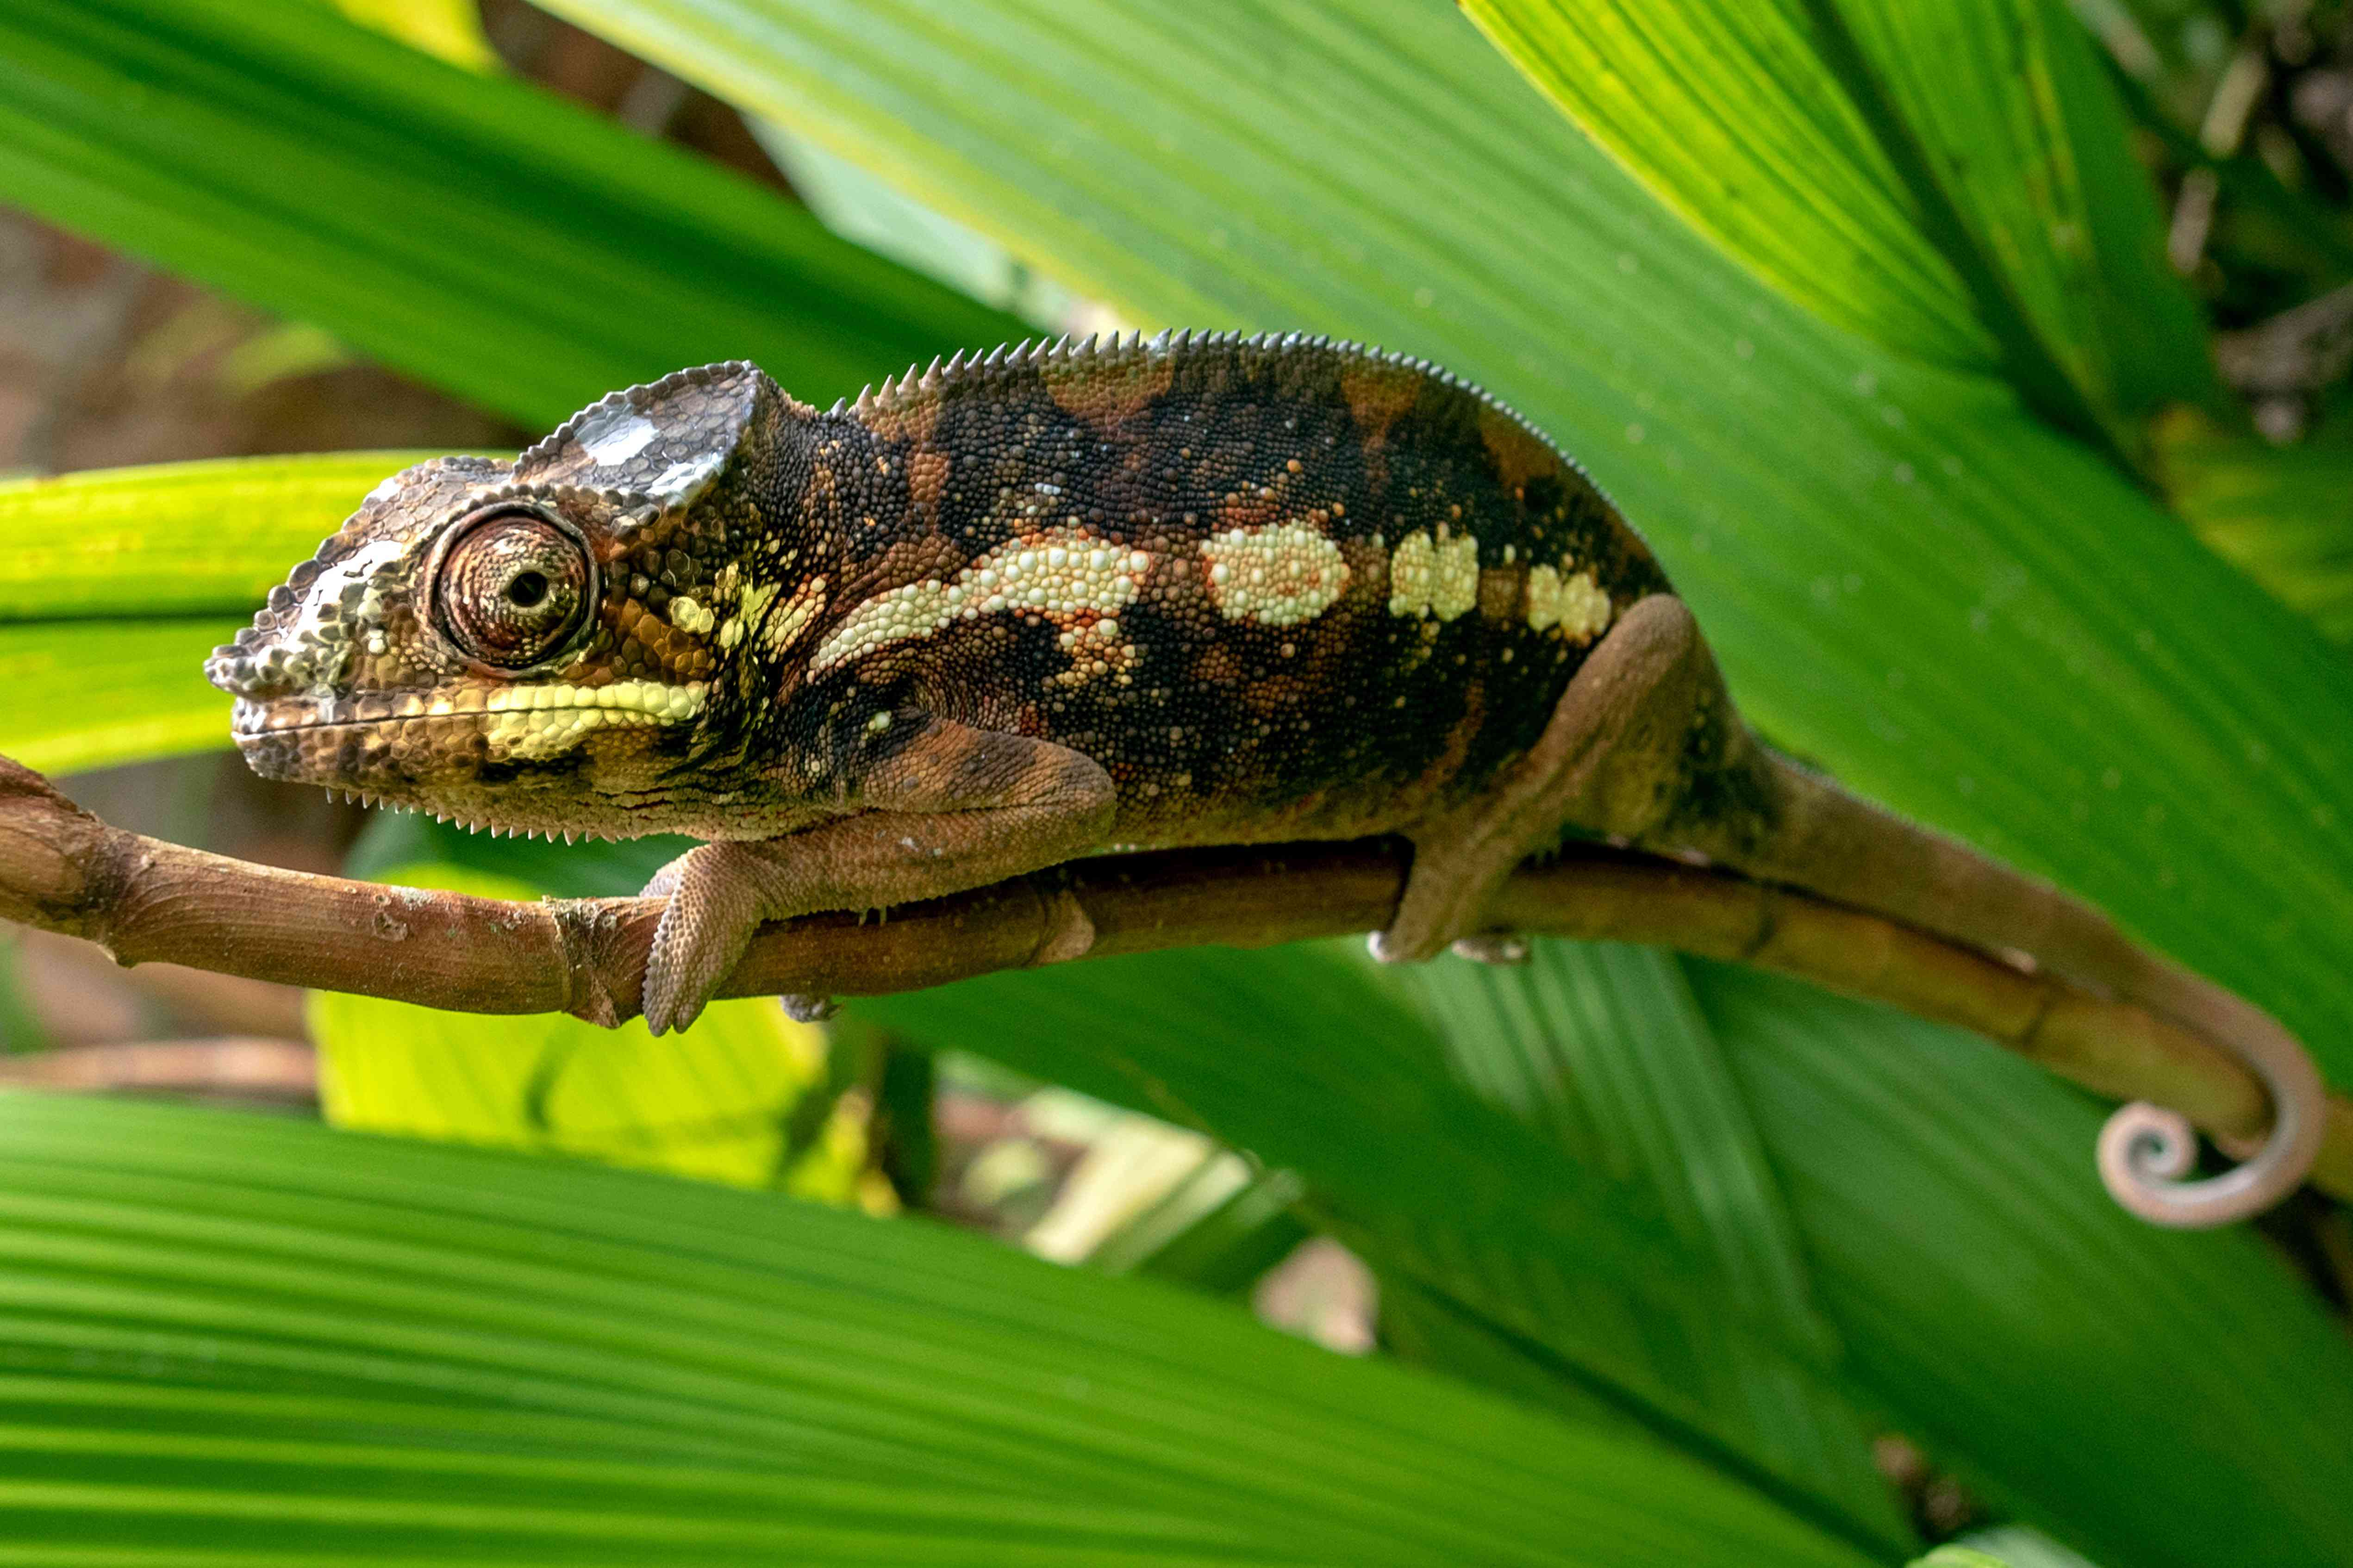 A Malagasy giant chameleon (Furcifer oustaleti) in mottled browns and yellows on a leaf in Madagascar